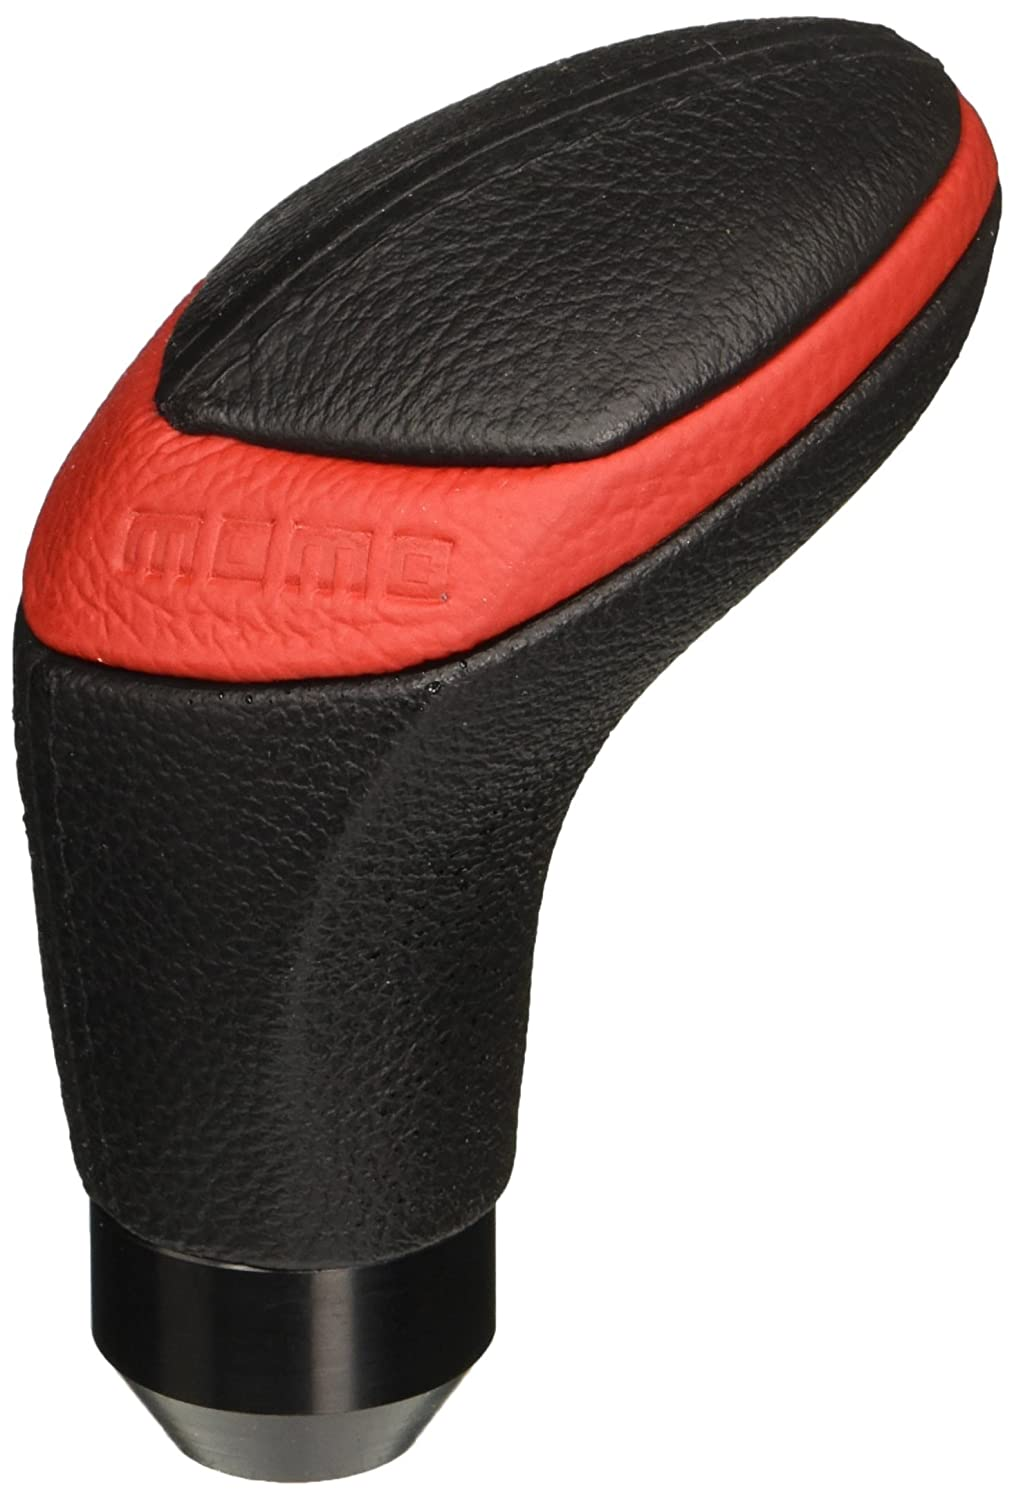 American Shifter 83625 Sparkle Red Metal Flake Shift Knob with M8 x 1.25 Insert Round Metal Flake